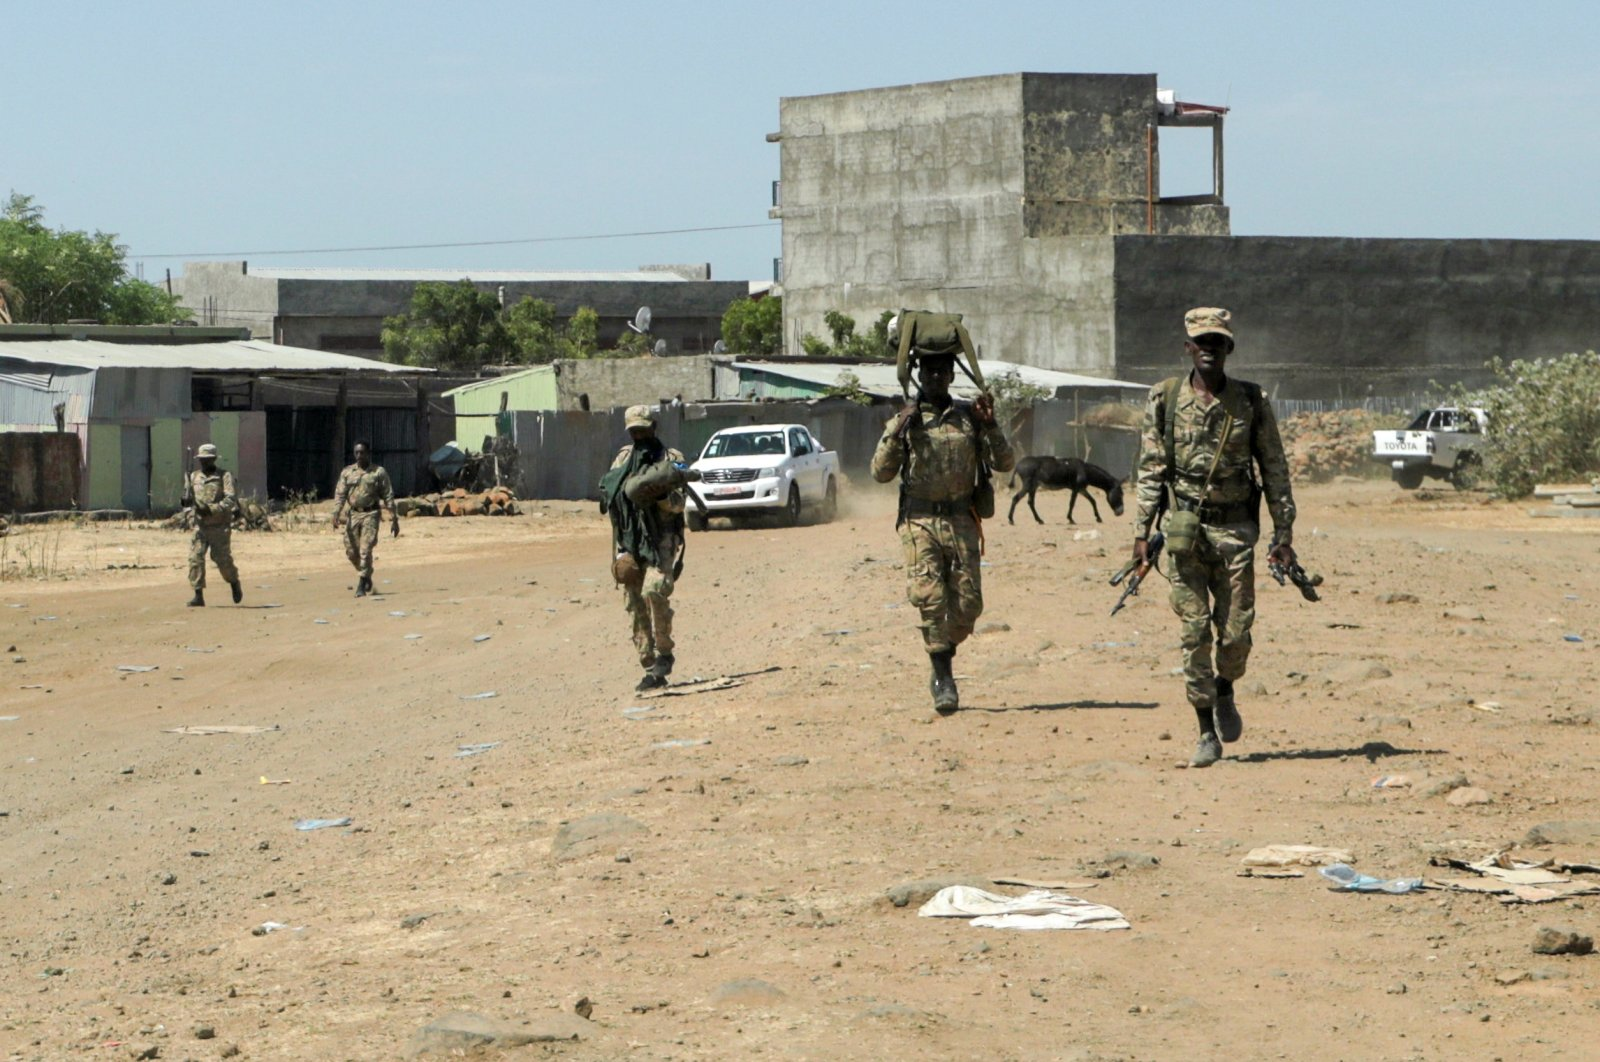 Members of the Amhara Special Force return to the Dansha Mechanized 5th division Military base after fighting against the Tigray People's Liberation Front (TPLF), Danasha, Amhara region near a border with Tigray, Nov. 9, 2020. (REUTERS Photo)